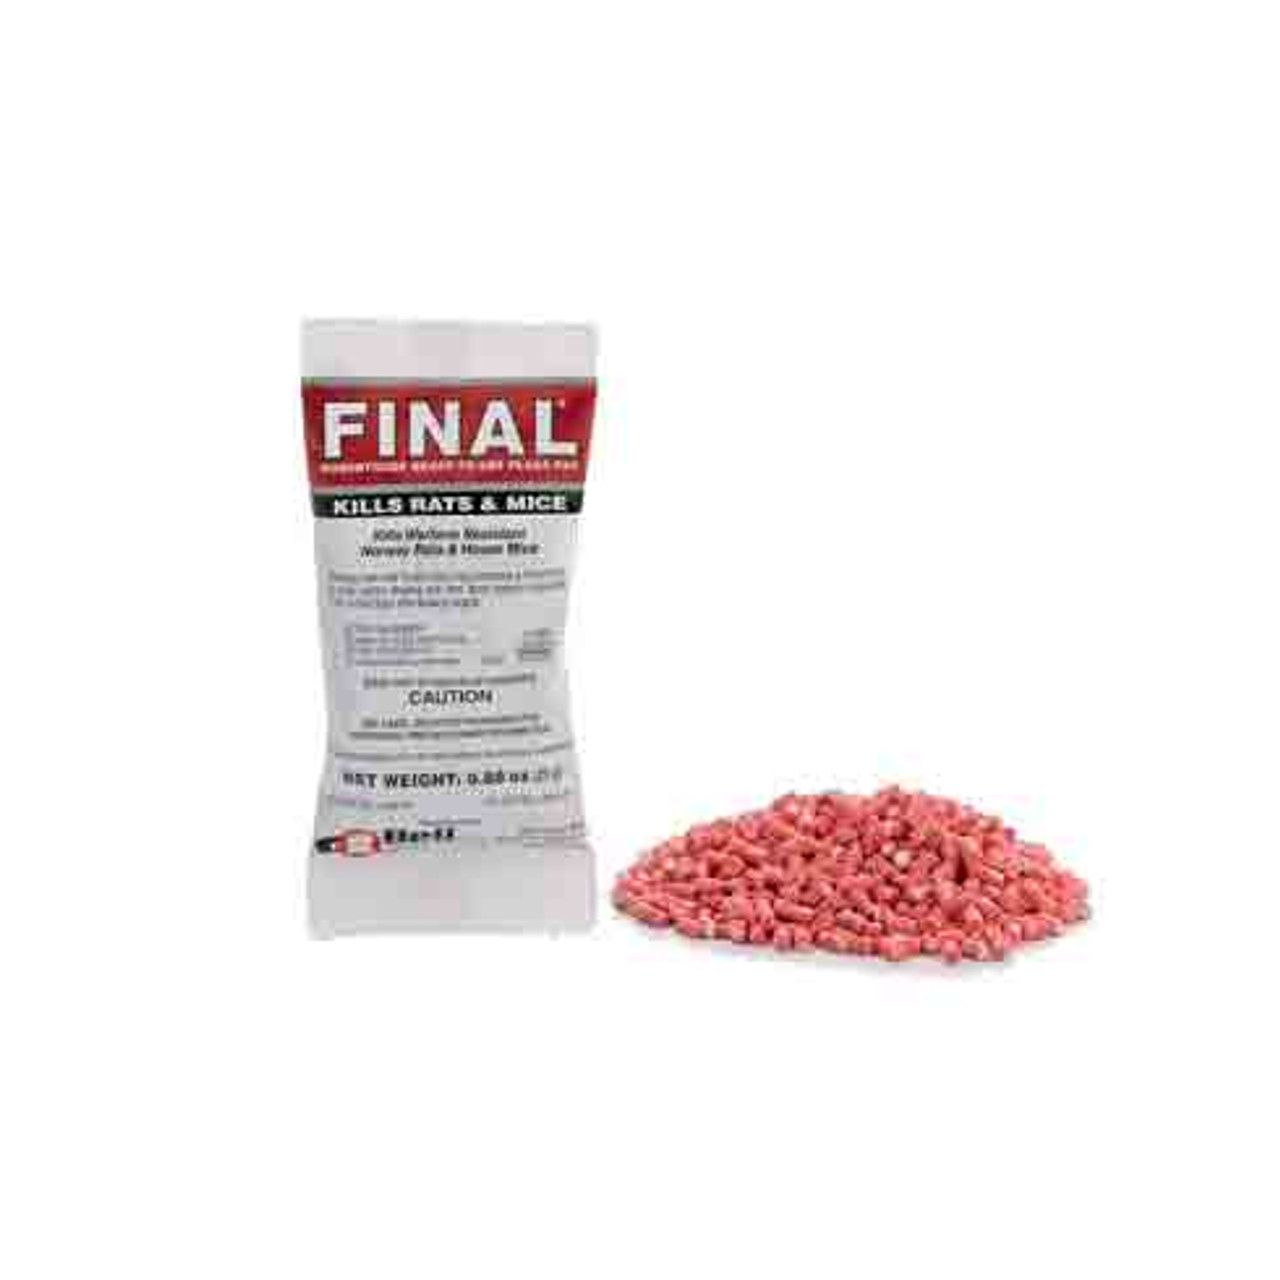 Final Rodenticide